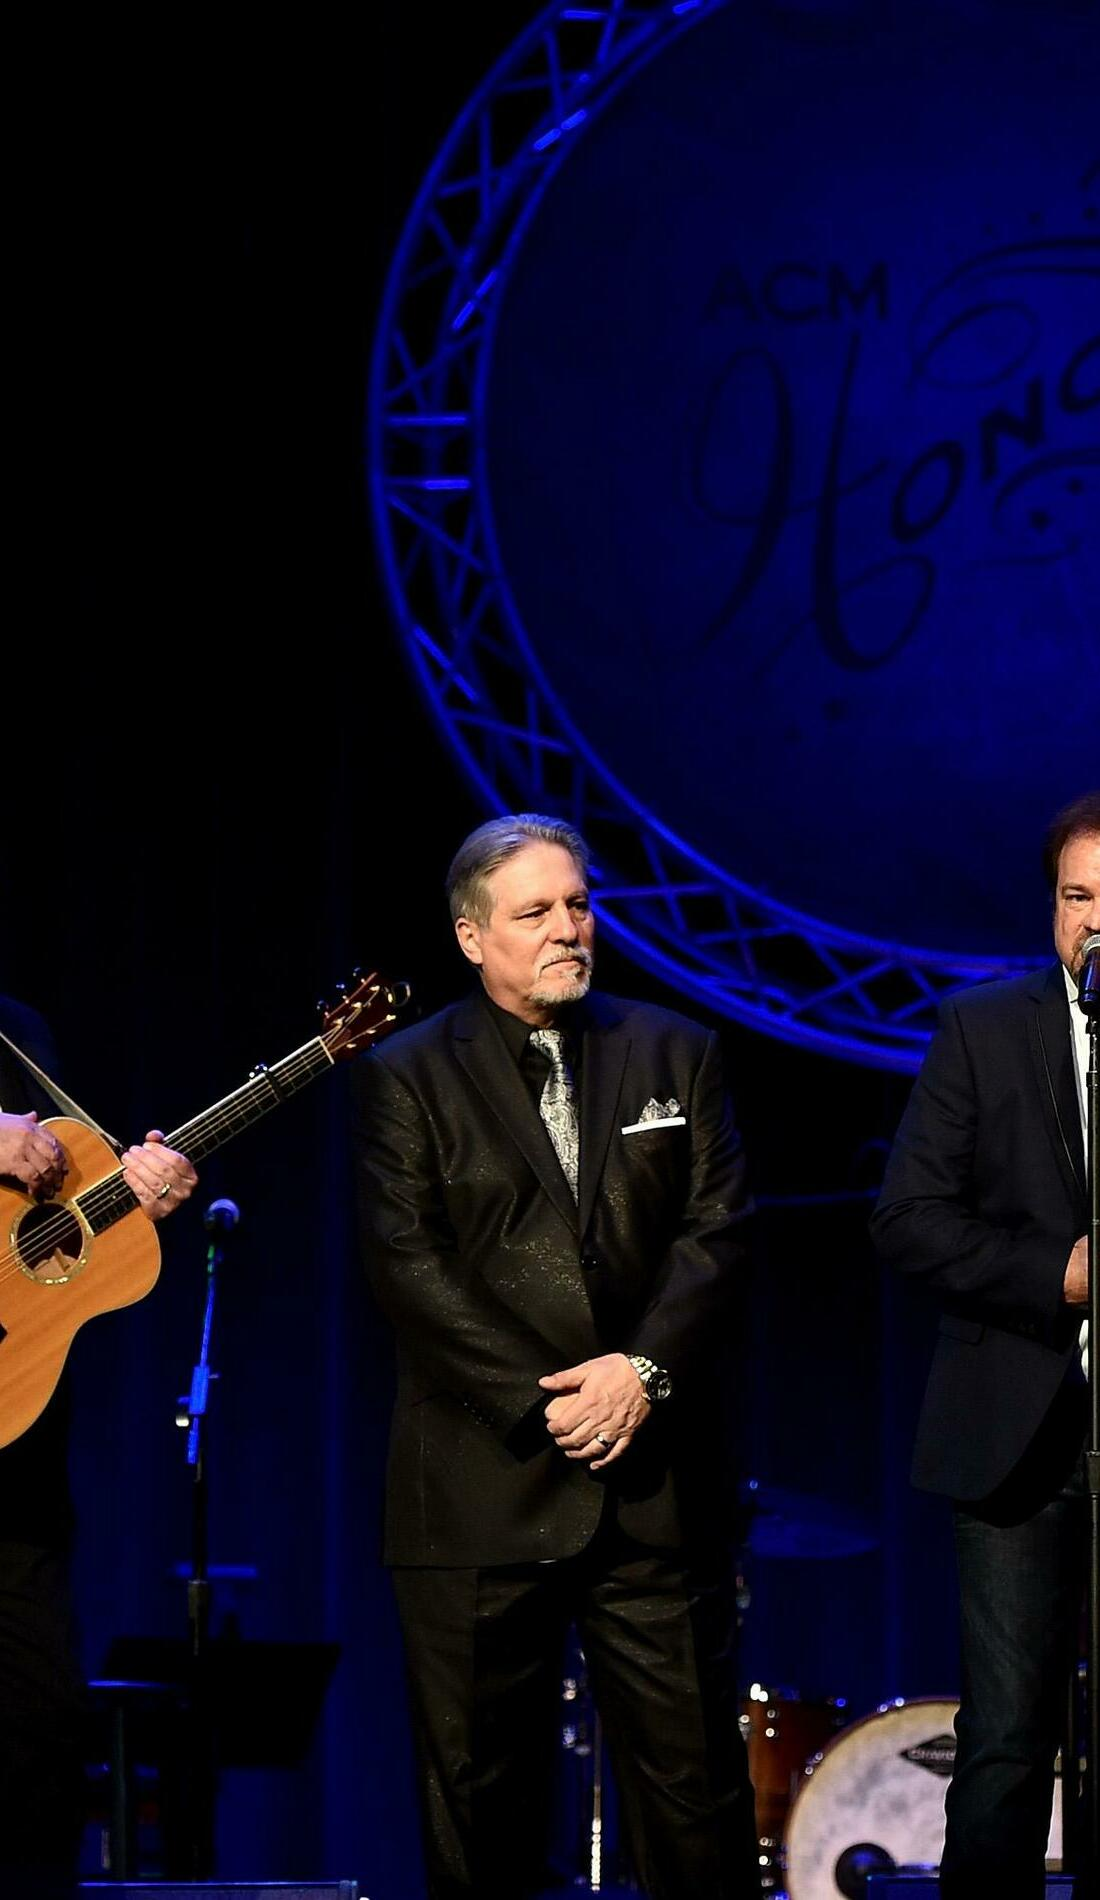 A Restless Heart live event